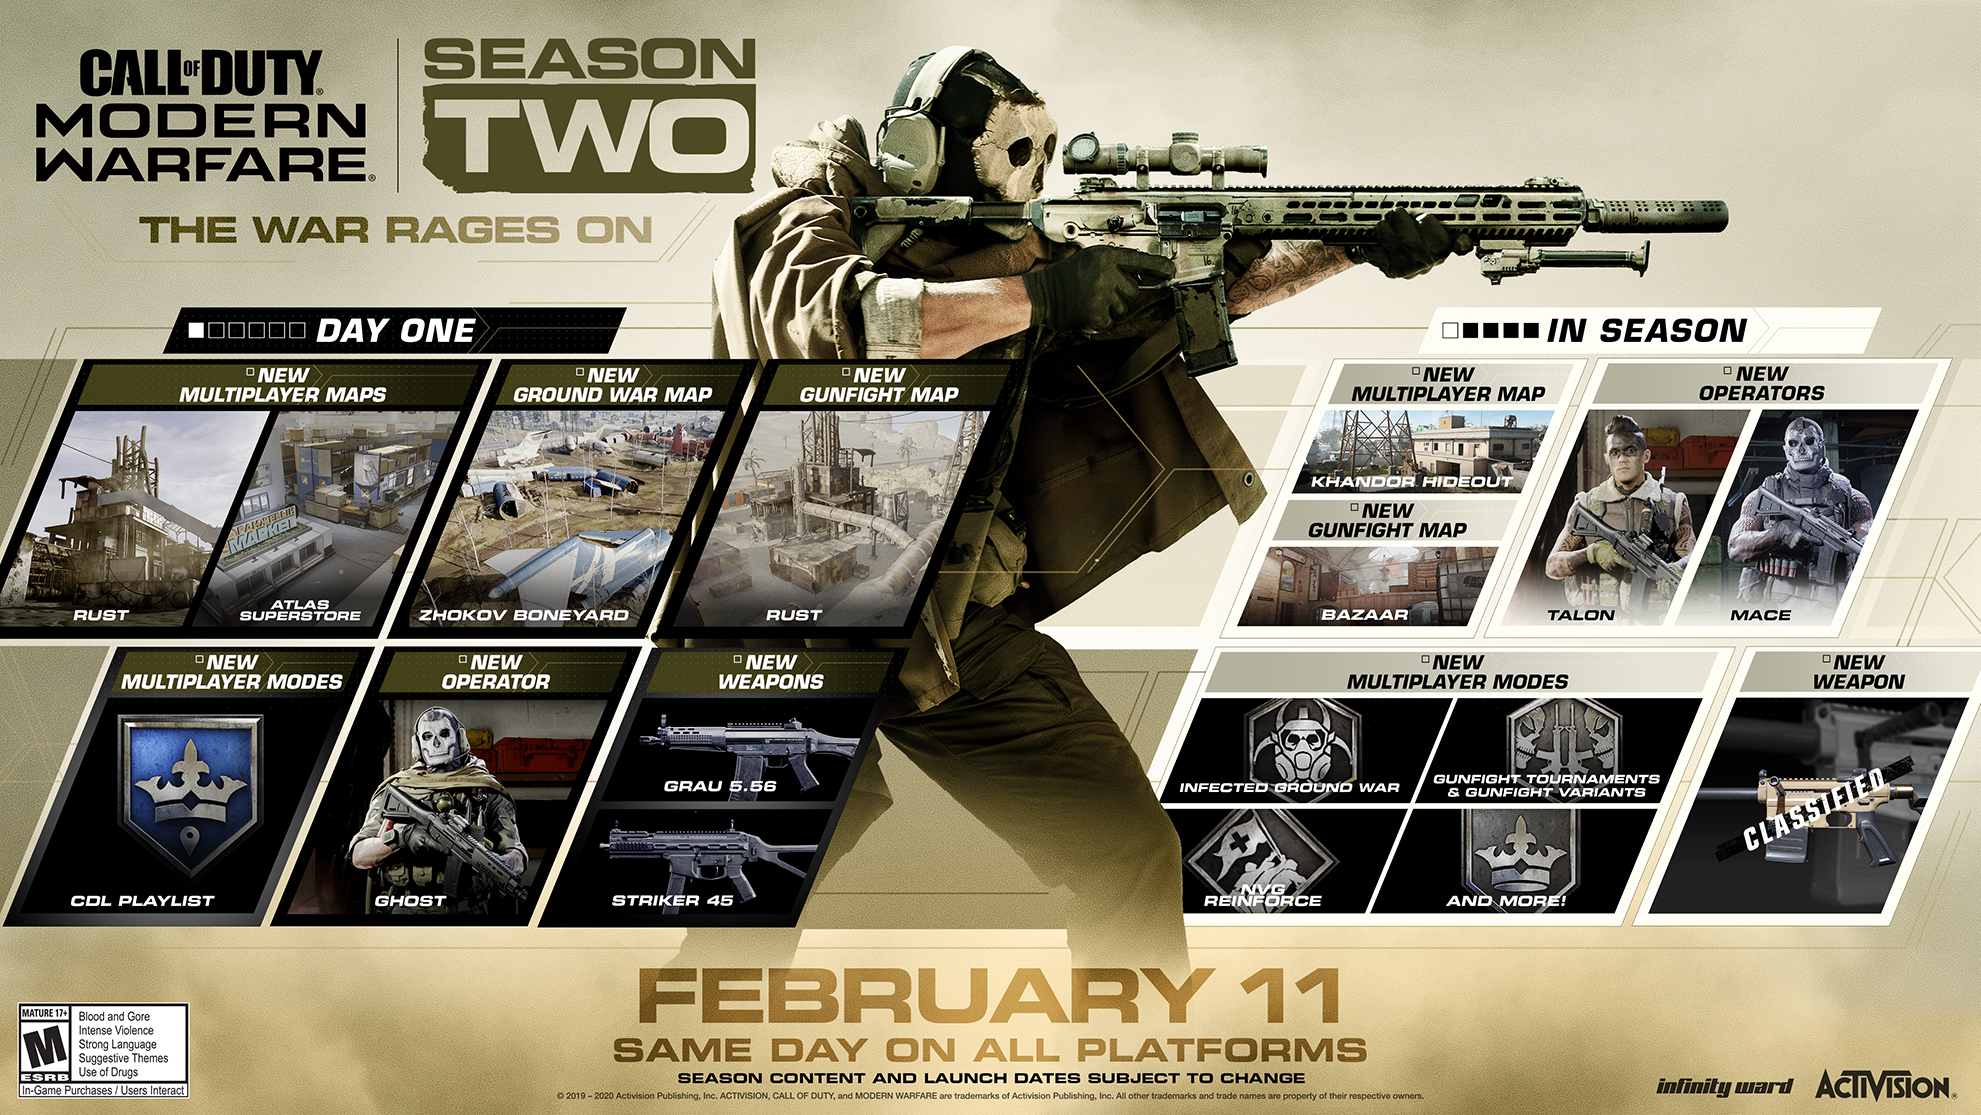 Infinity Ward's Season Two roadmap for Modern Warfare.